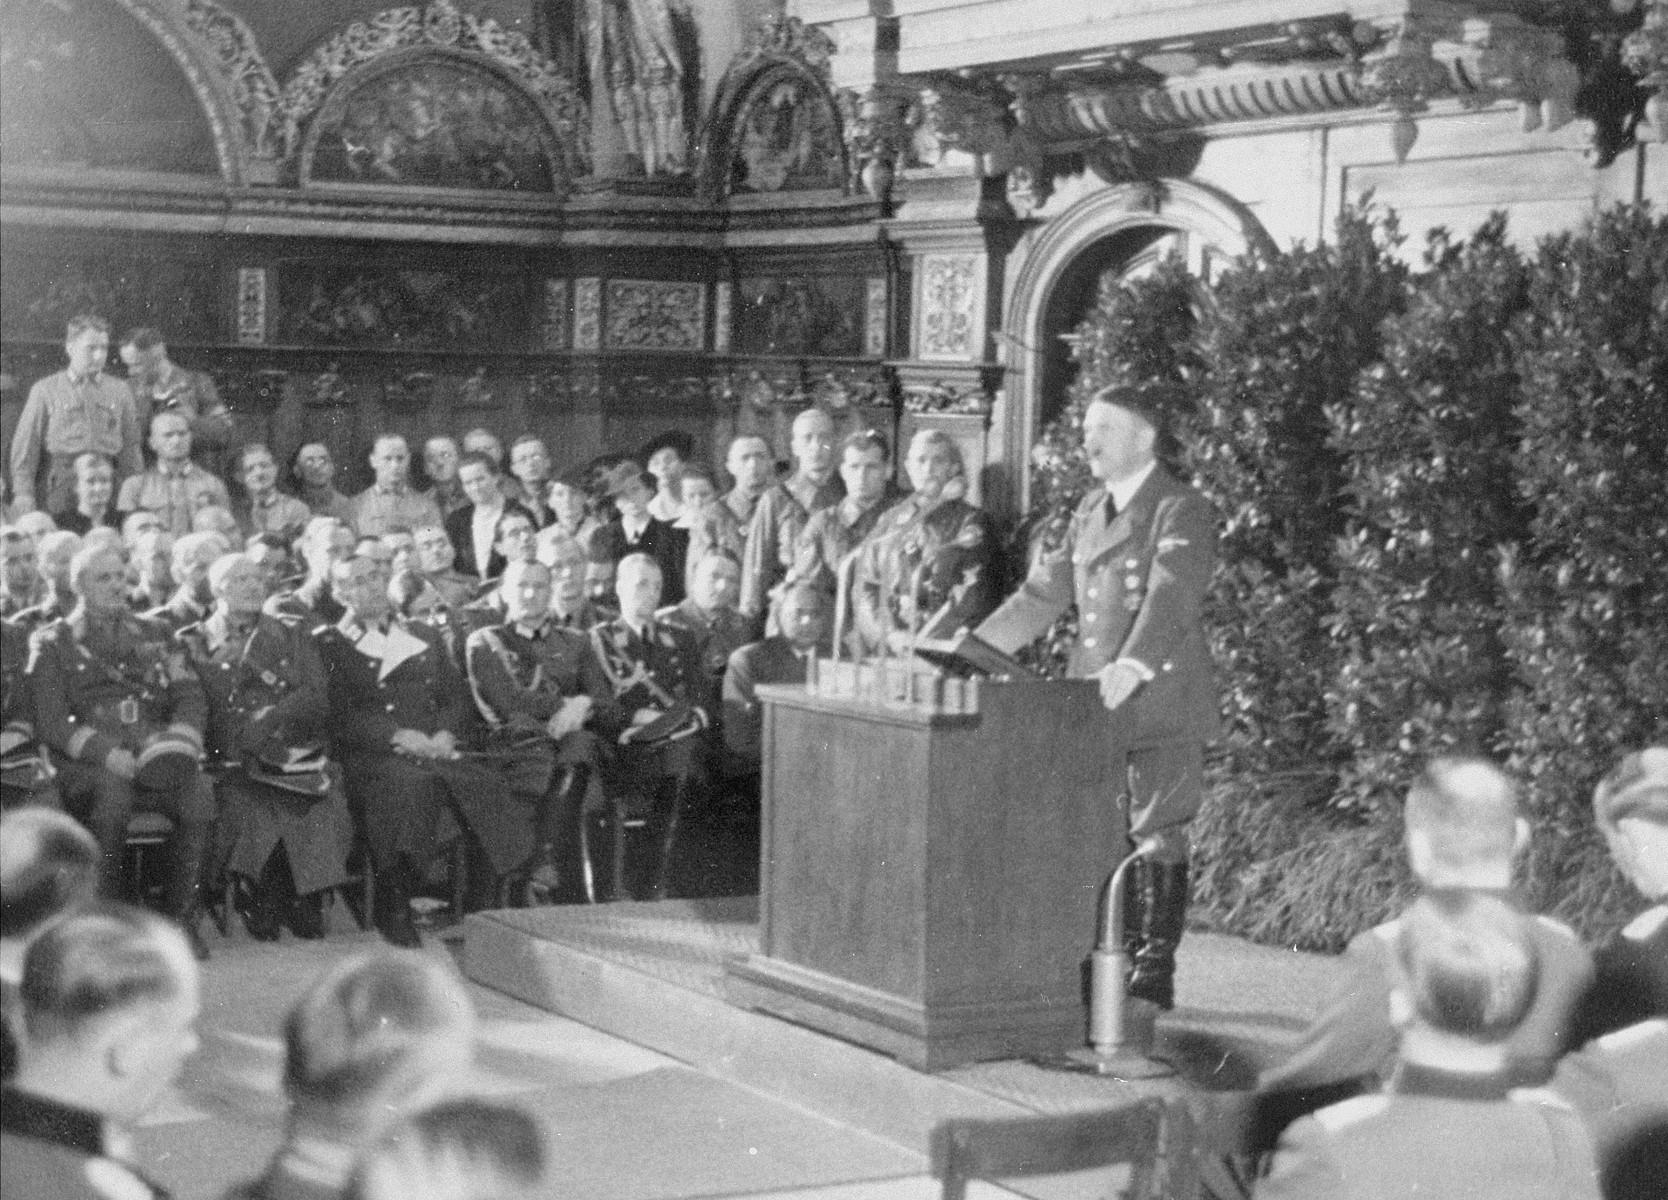 Adolf Hitler addresses an audience in Danzig.